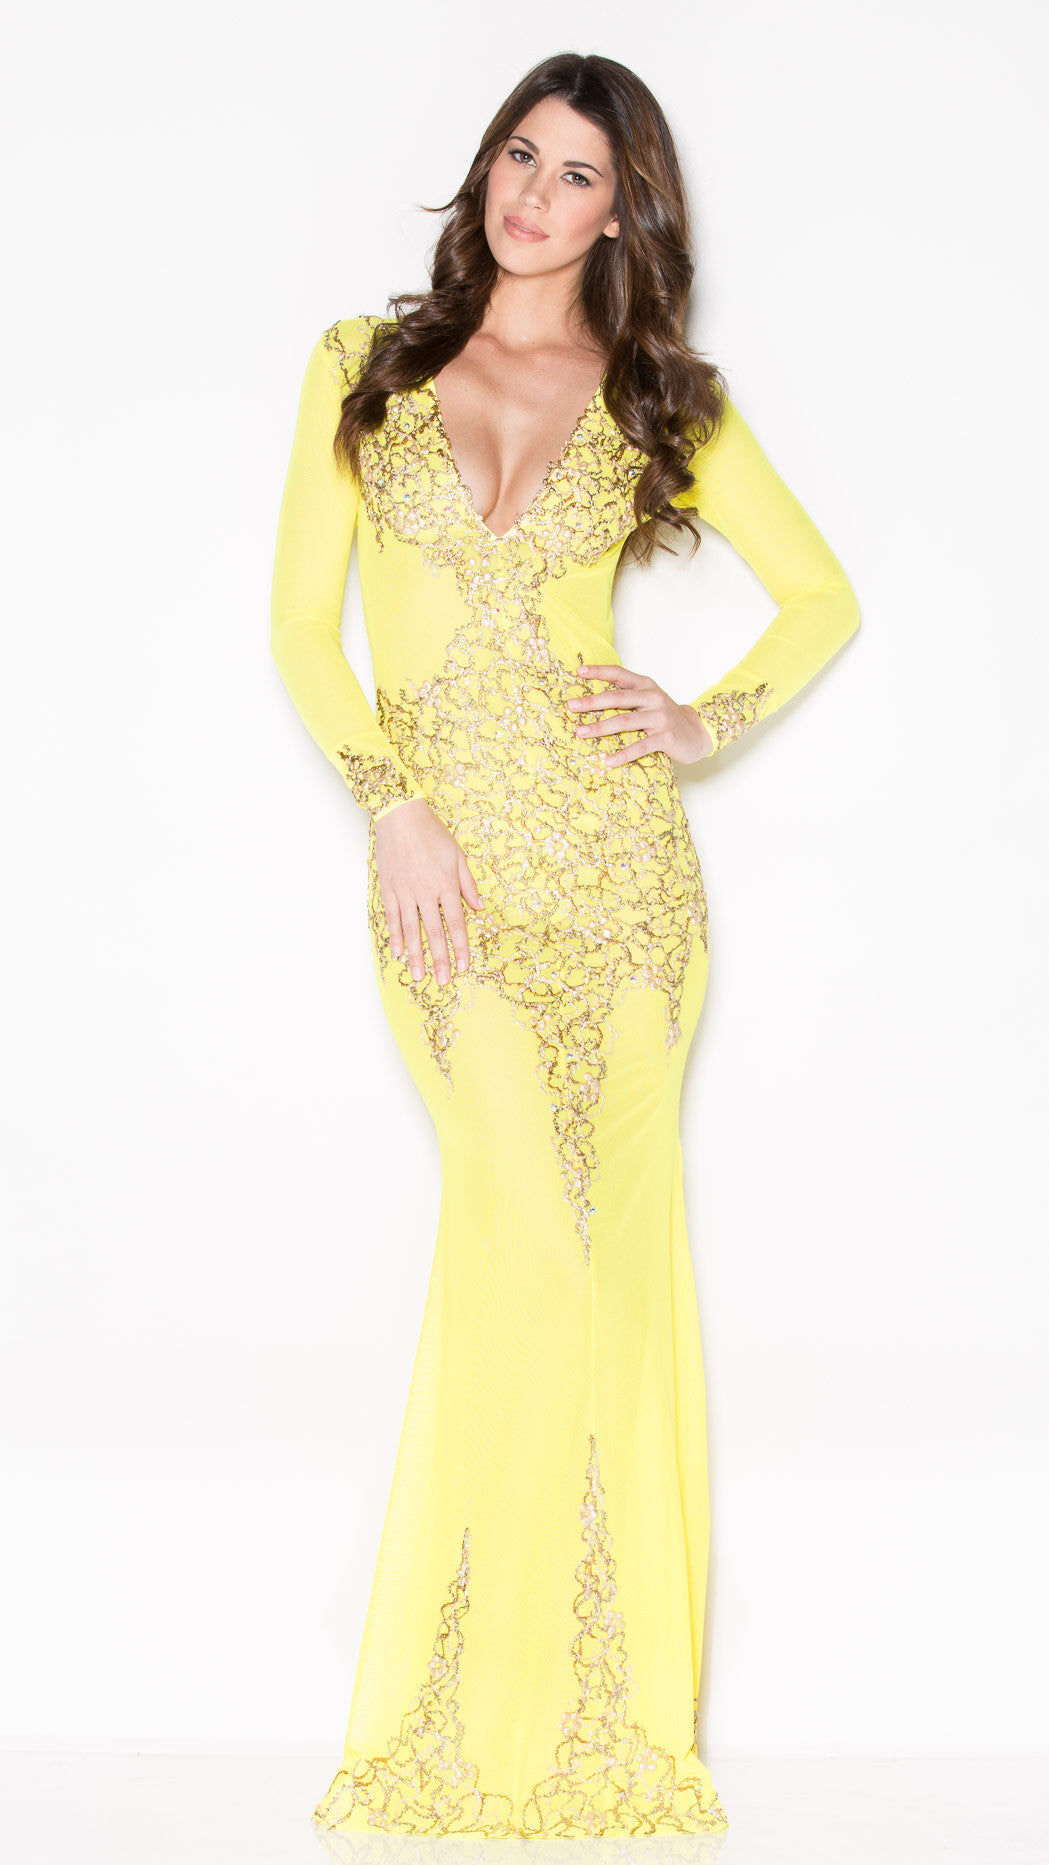 BEYONCE GOWN IN YELLOW WITH GOLD - HOLT